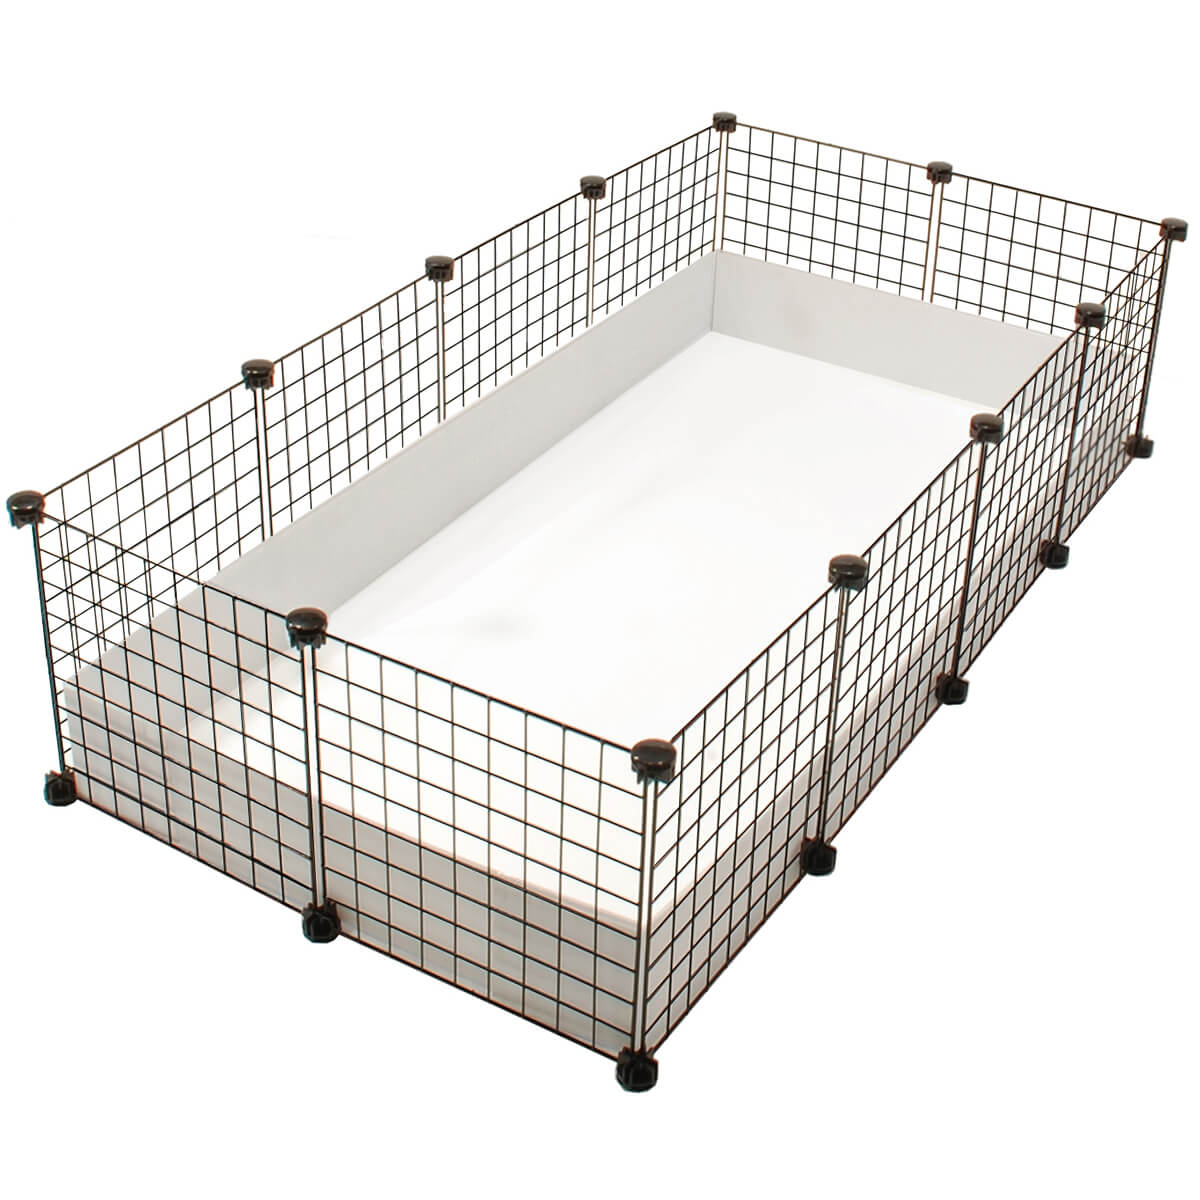 Large 2x4 grids cage standard cages cagetopia for Small guinea pig cages for sale